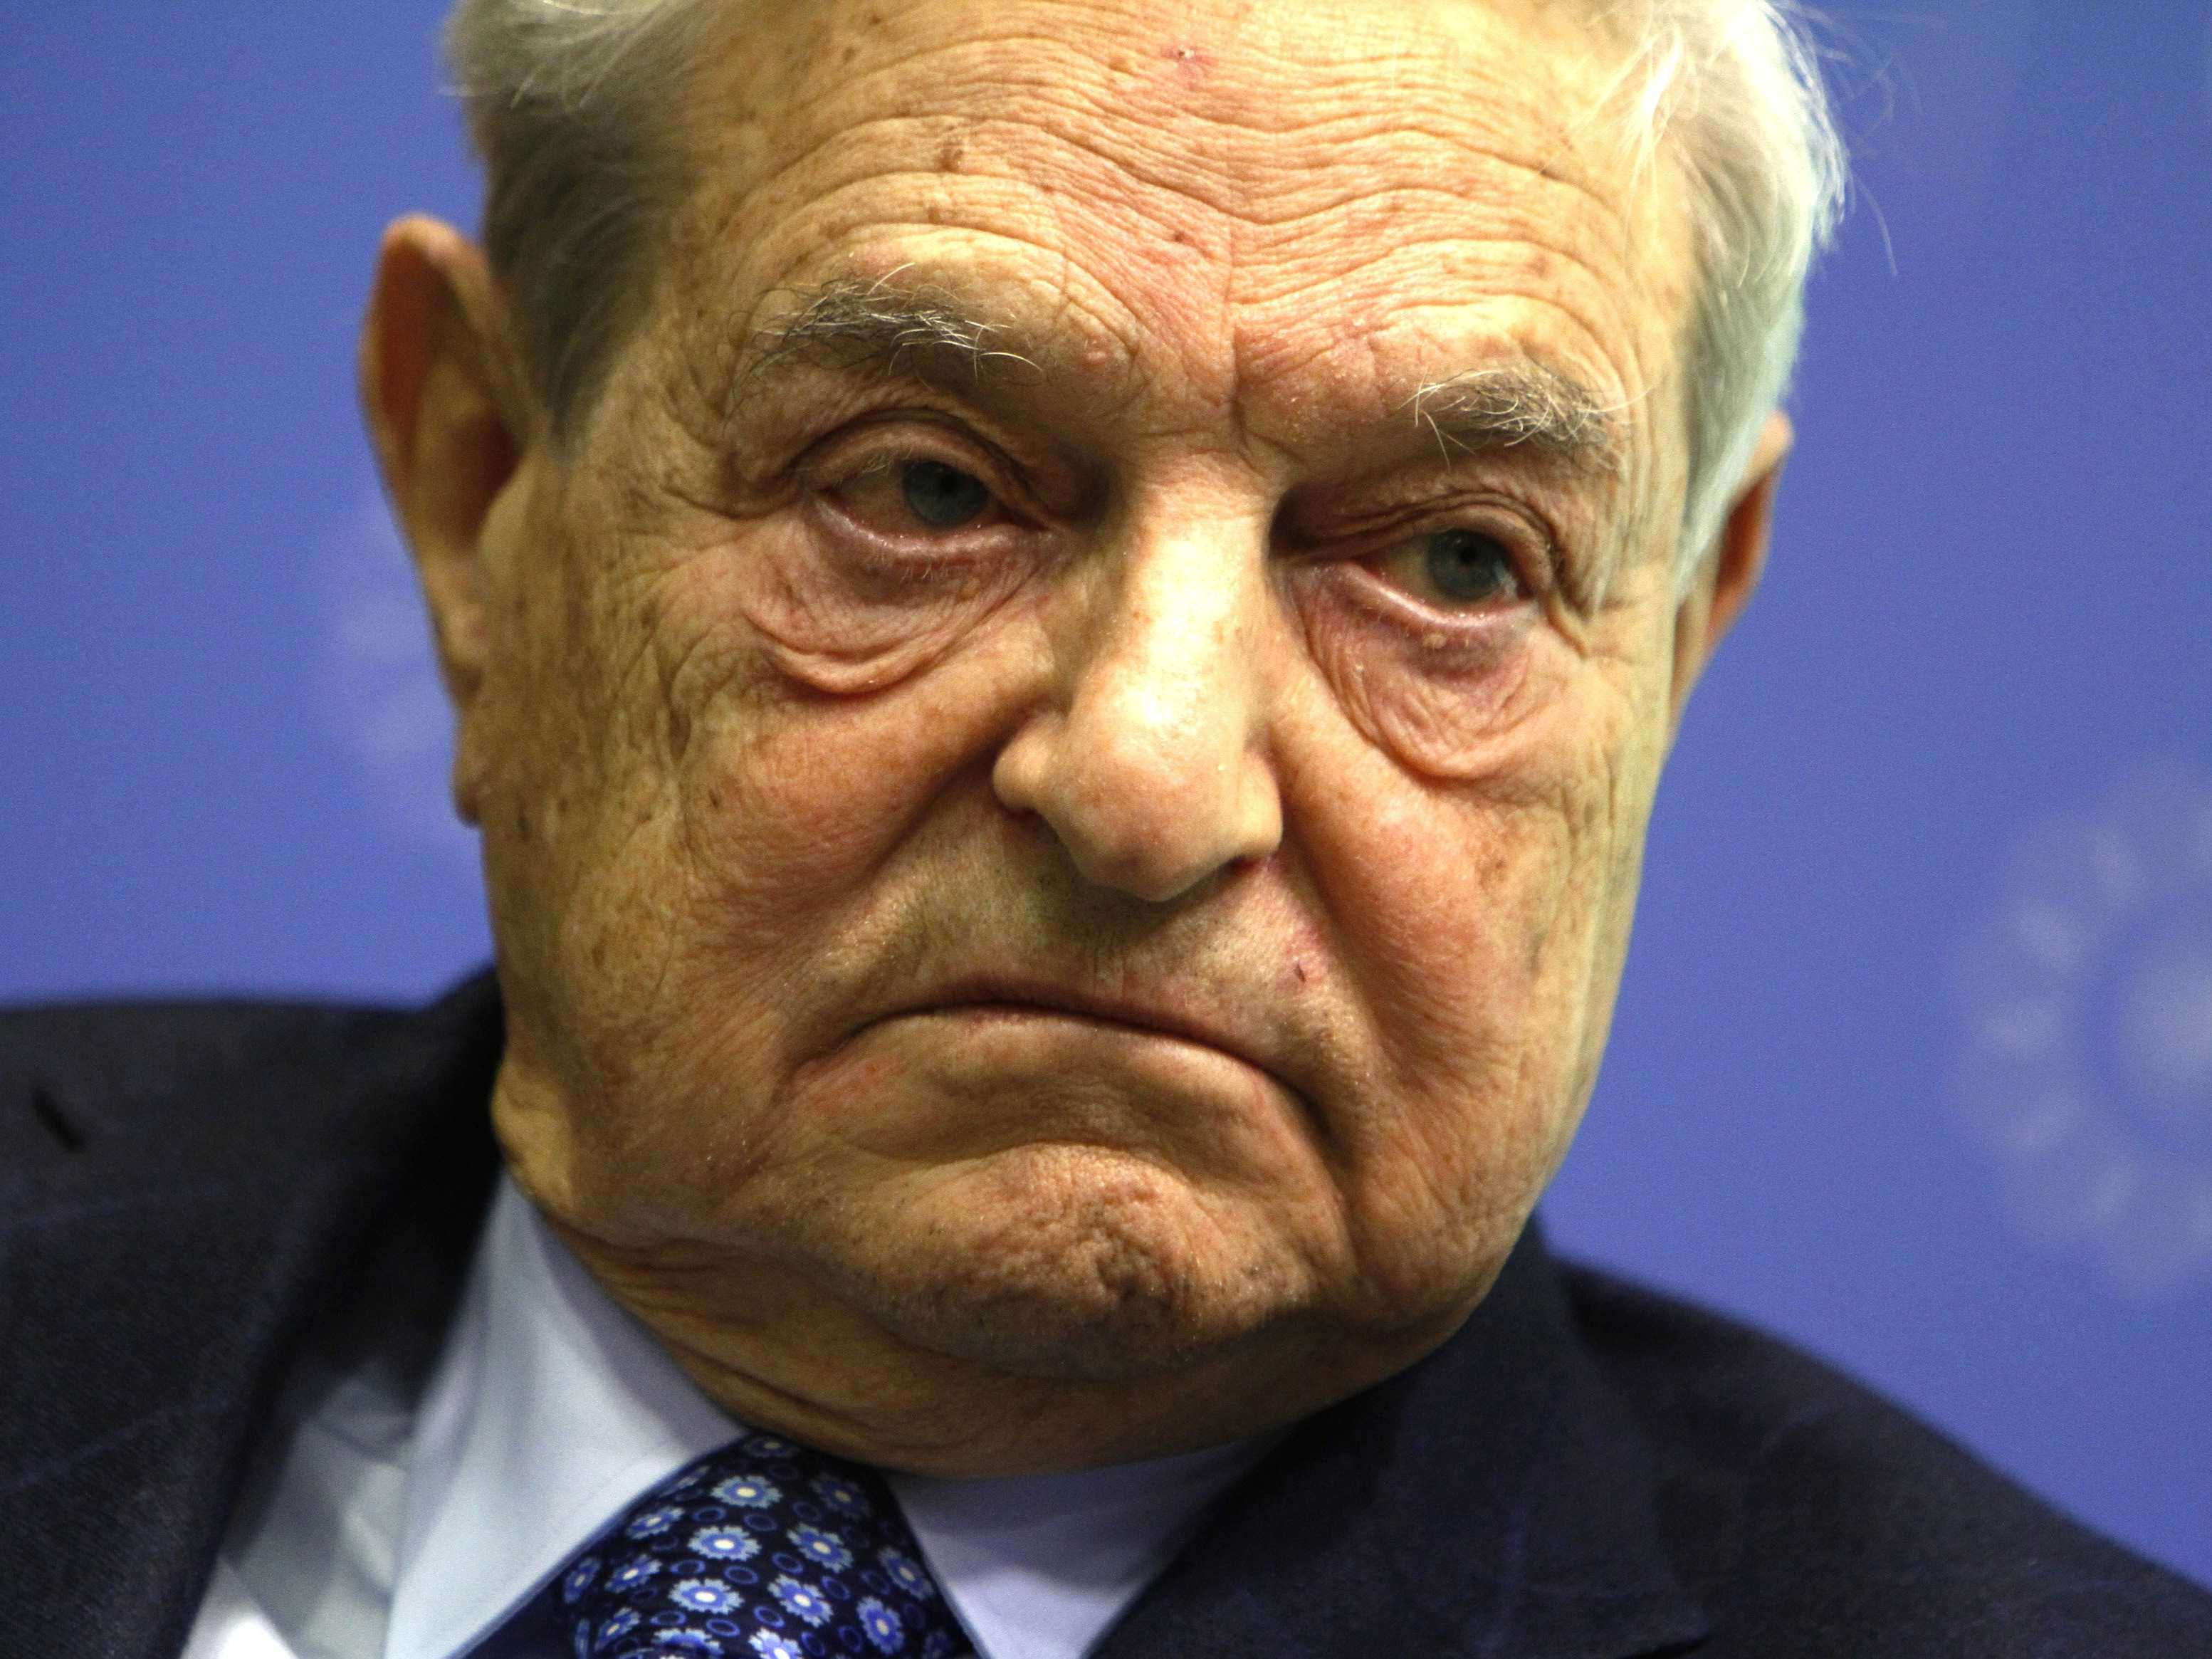 http://wearechange.org/wp-content/uploads/2016/01/george-soros.jpg